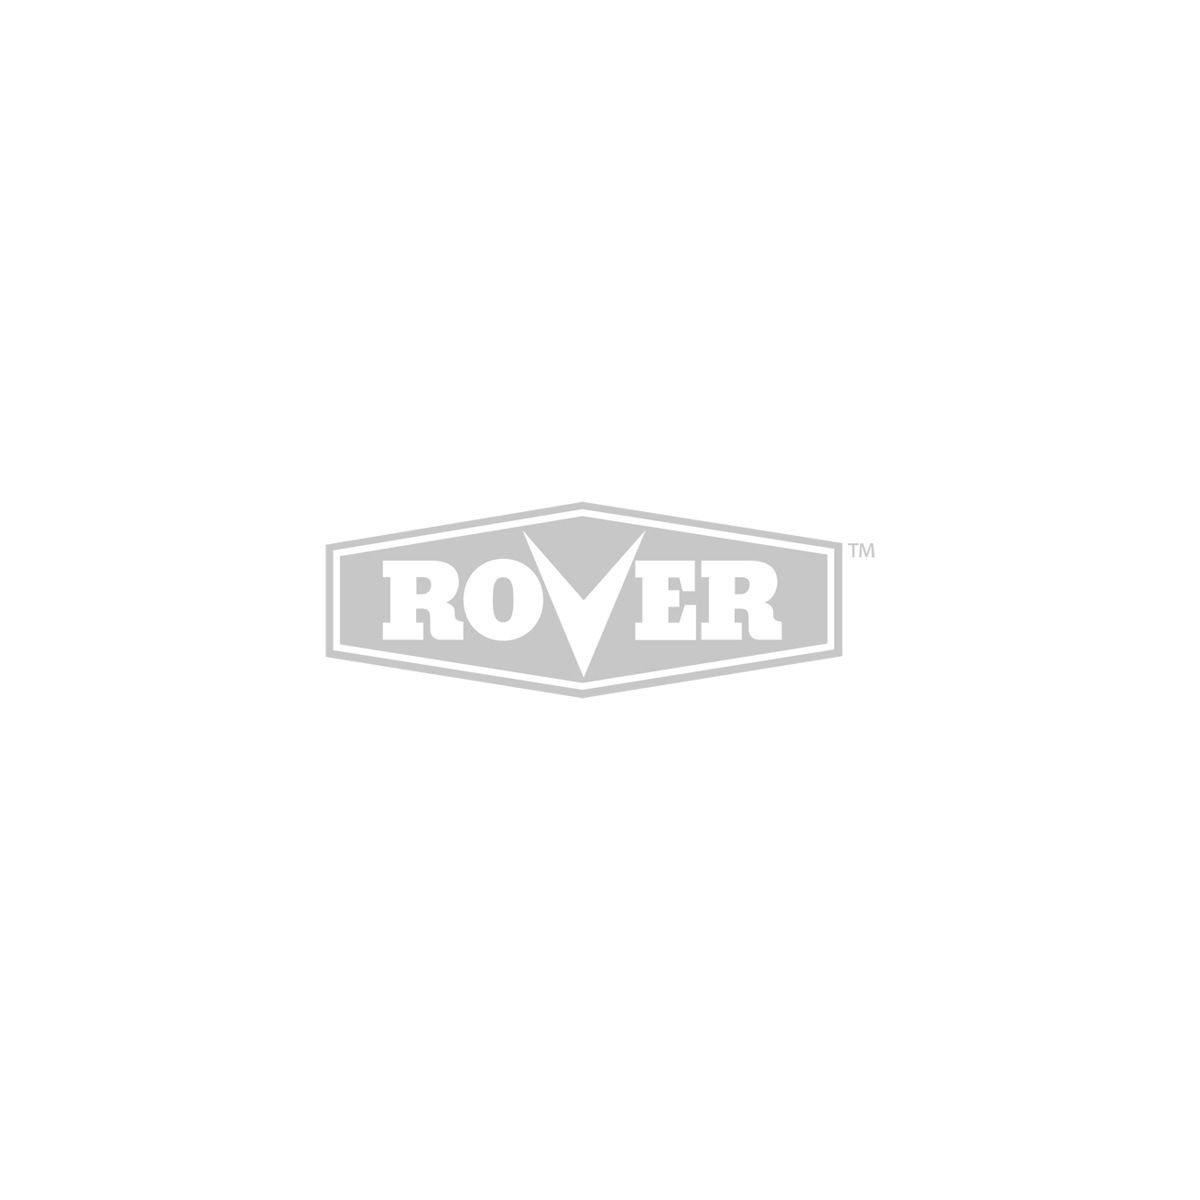 Ergonomic comfort grip for excellent comfort during long jobs